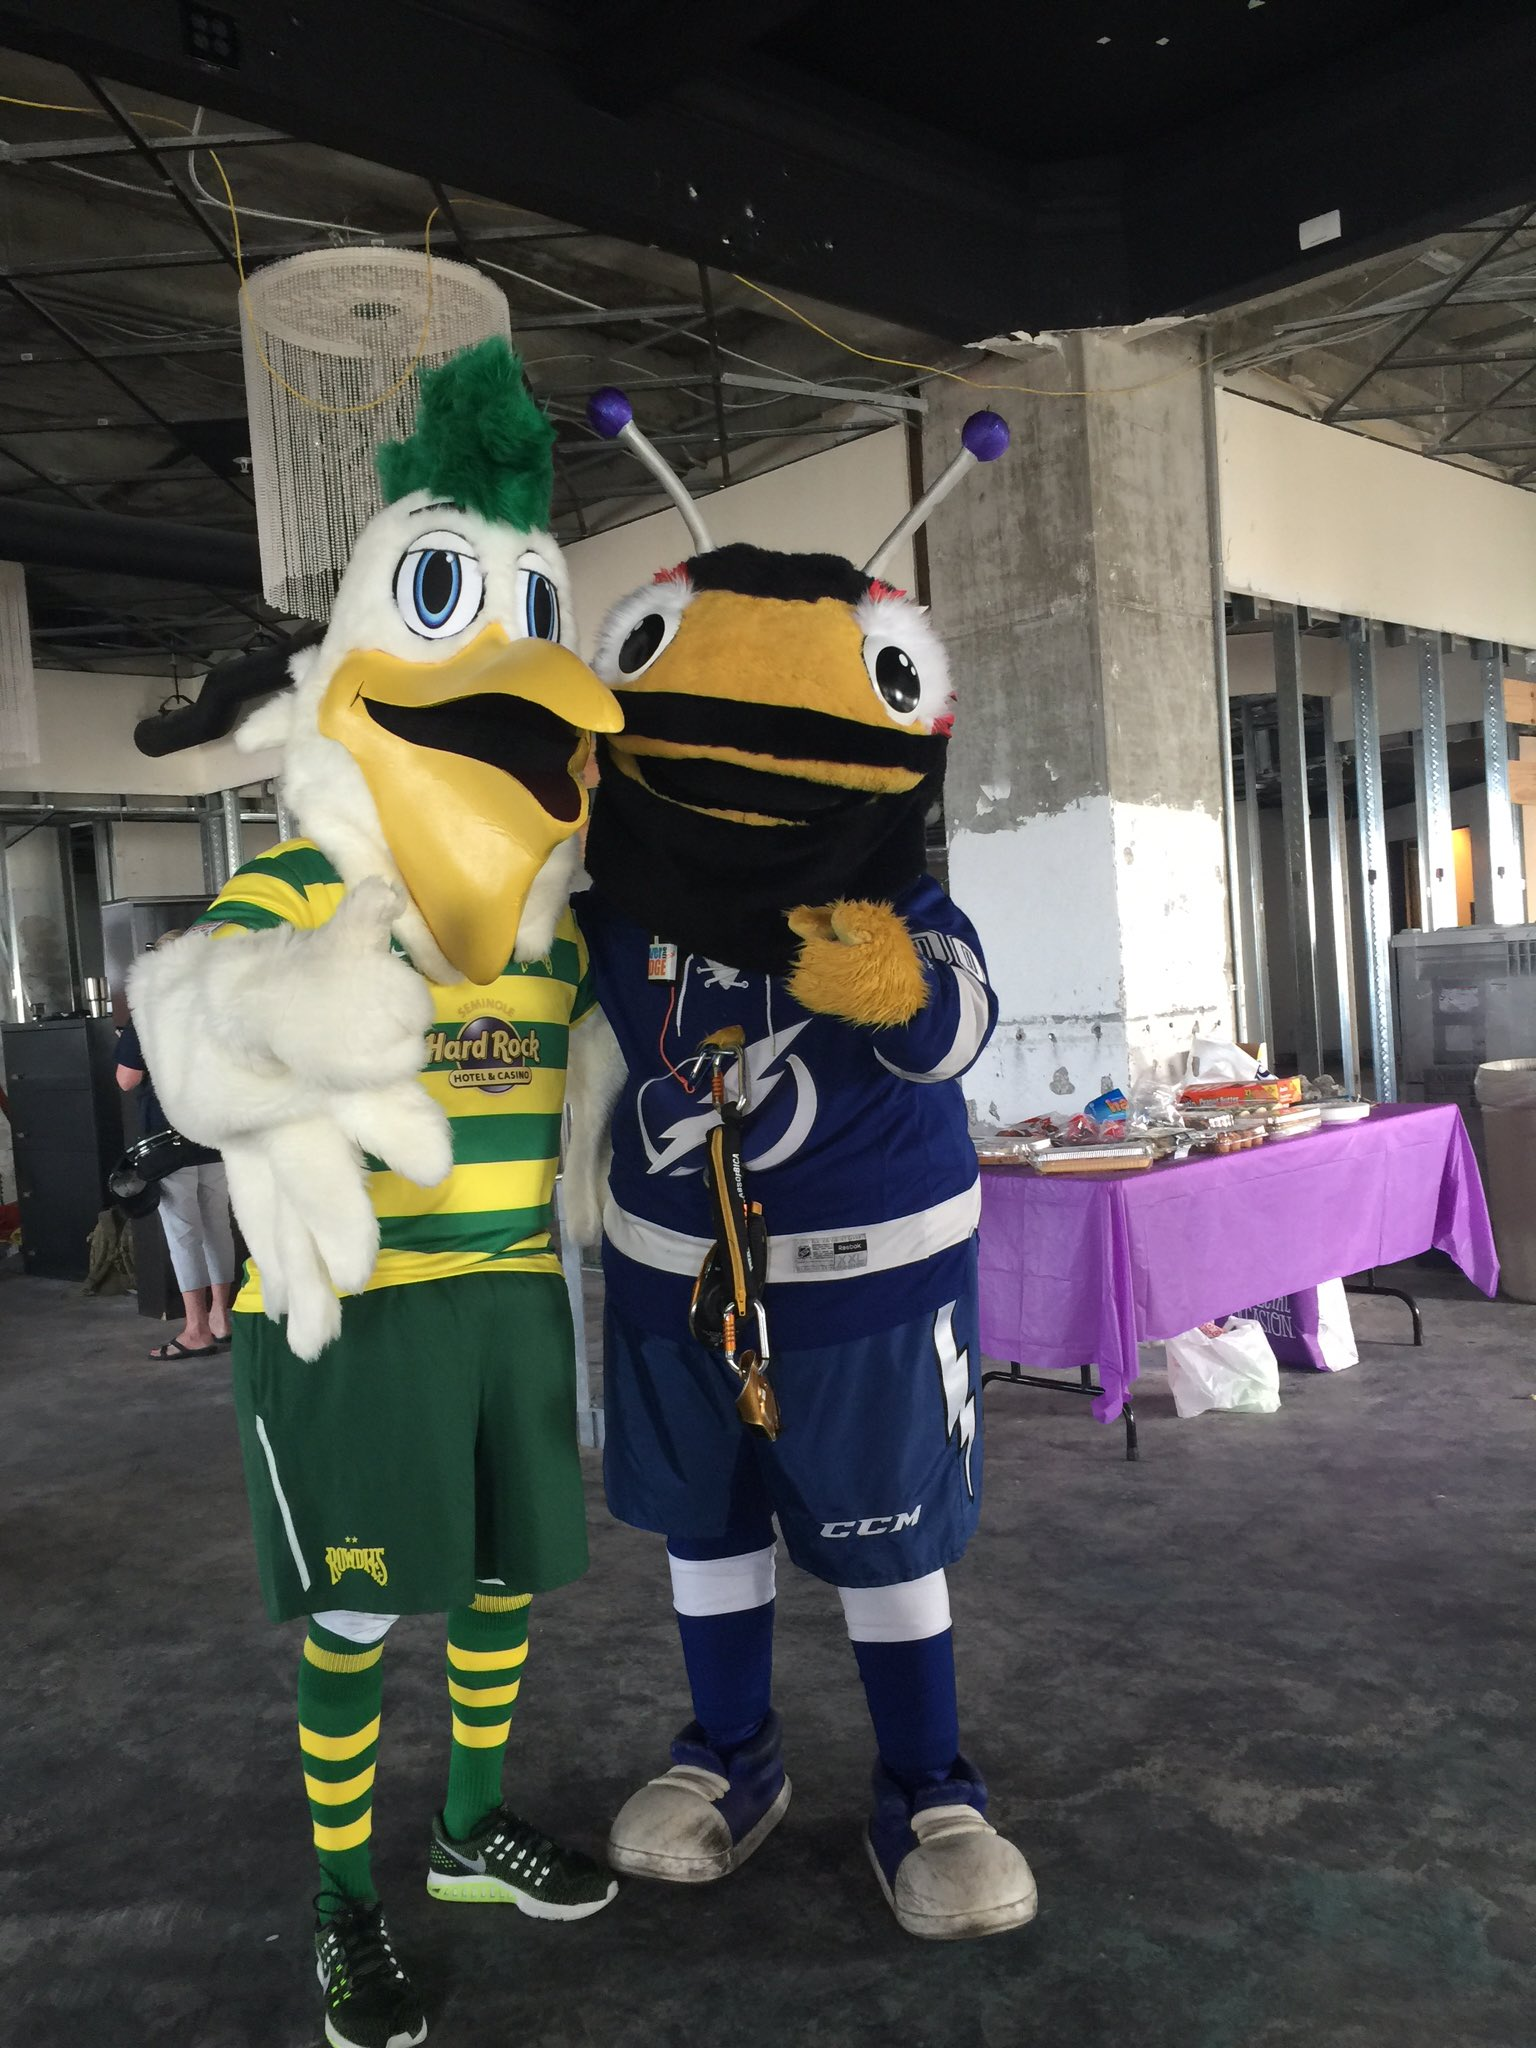 tampa bay rowdies y on twitter pete the pelican and tblightning s lightning bug getting ready to repel off the priatek plaza building in st pete tampa bay rowdies y on twitter pete